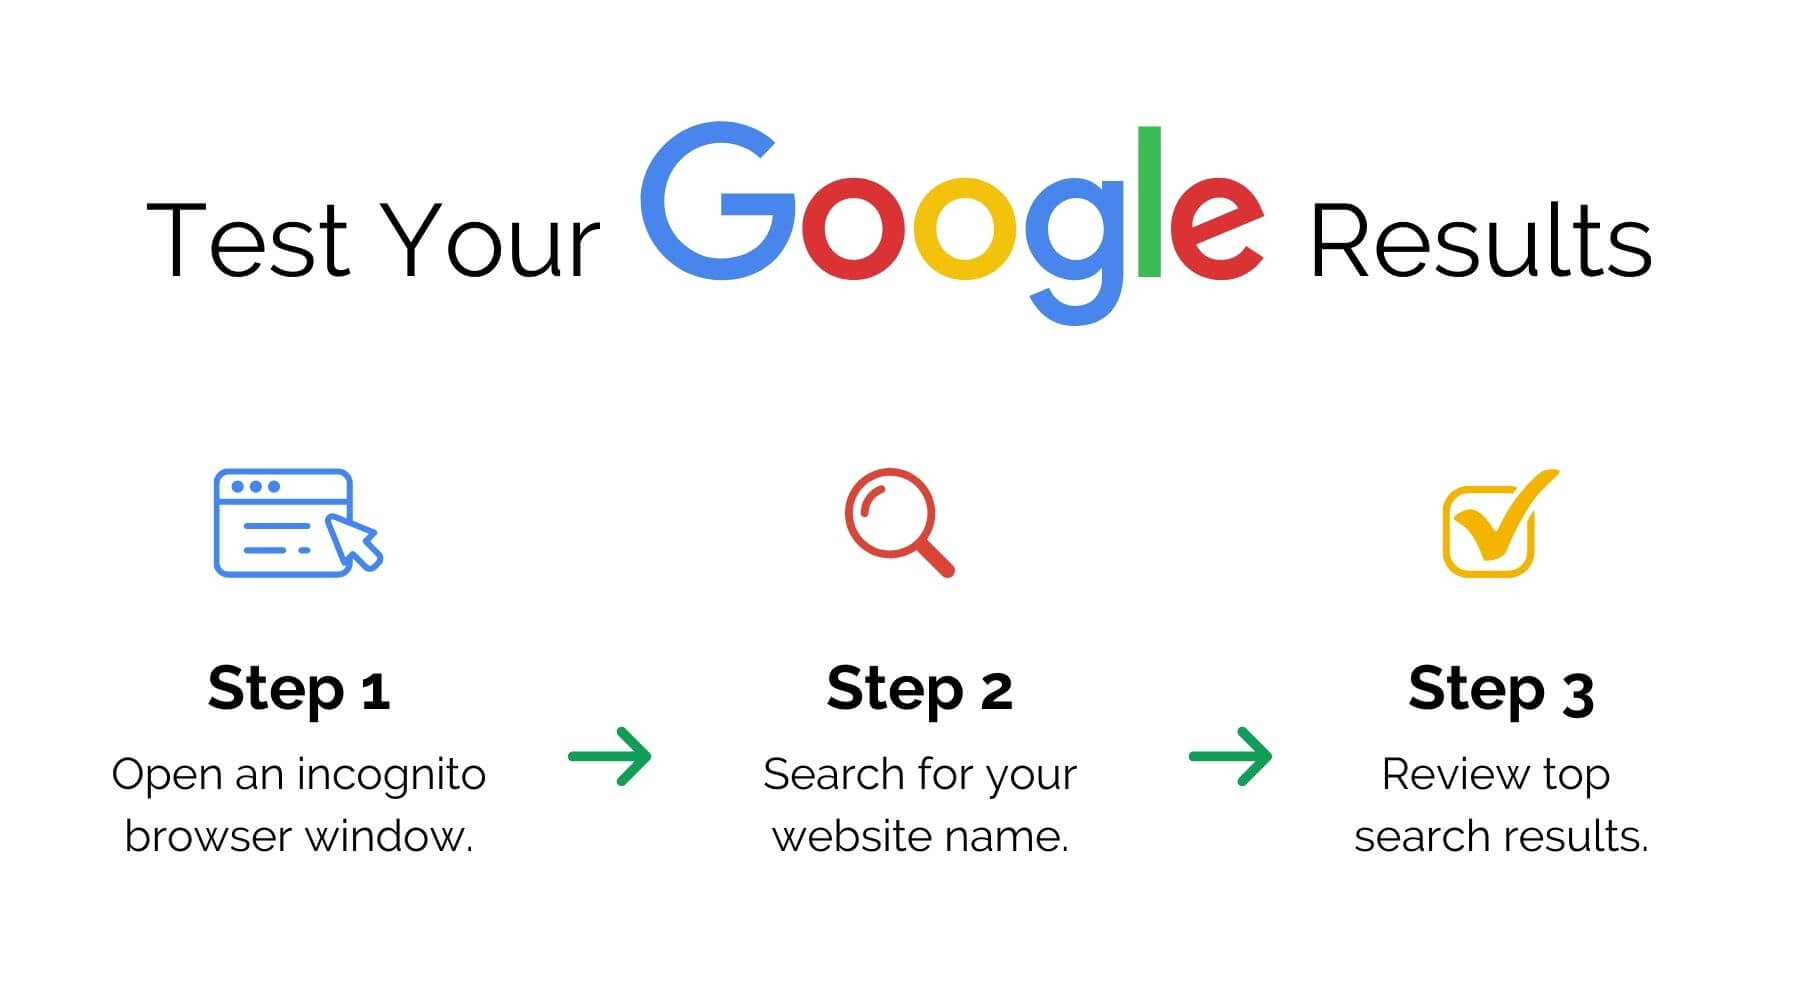 Test your Google results in three steps.